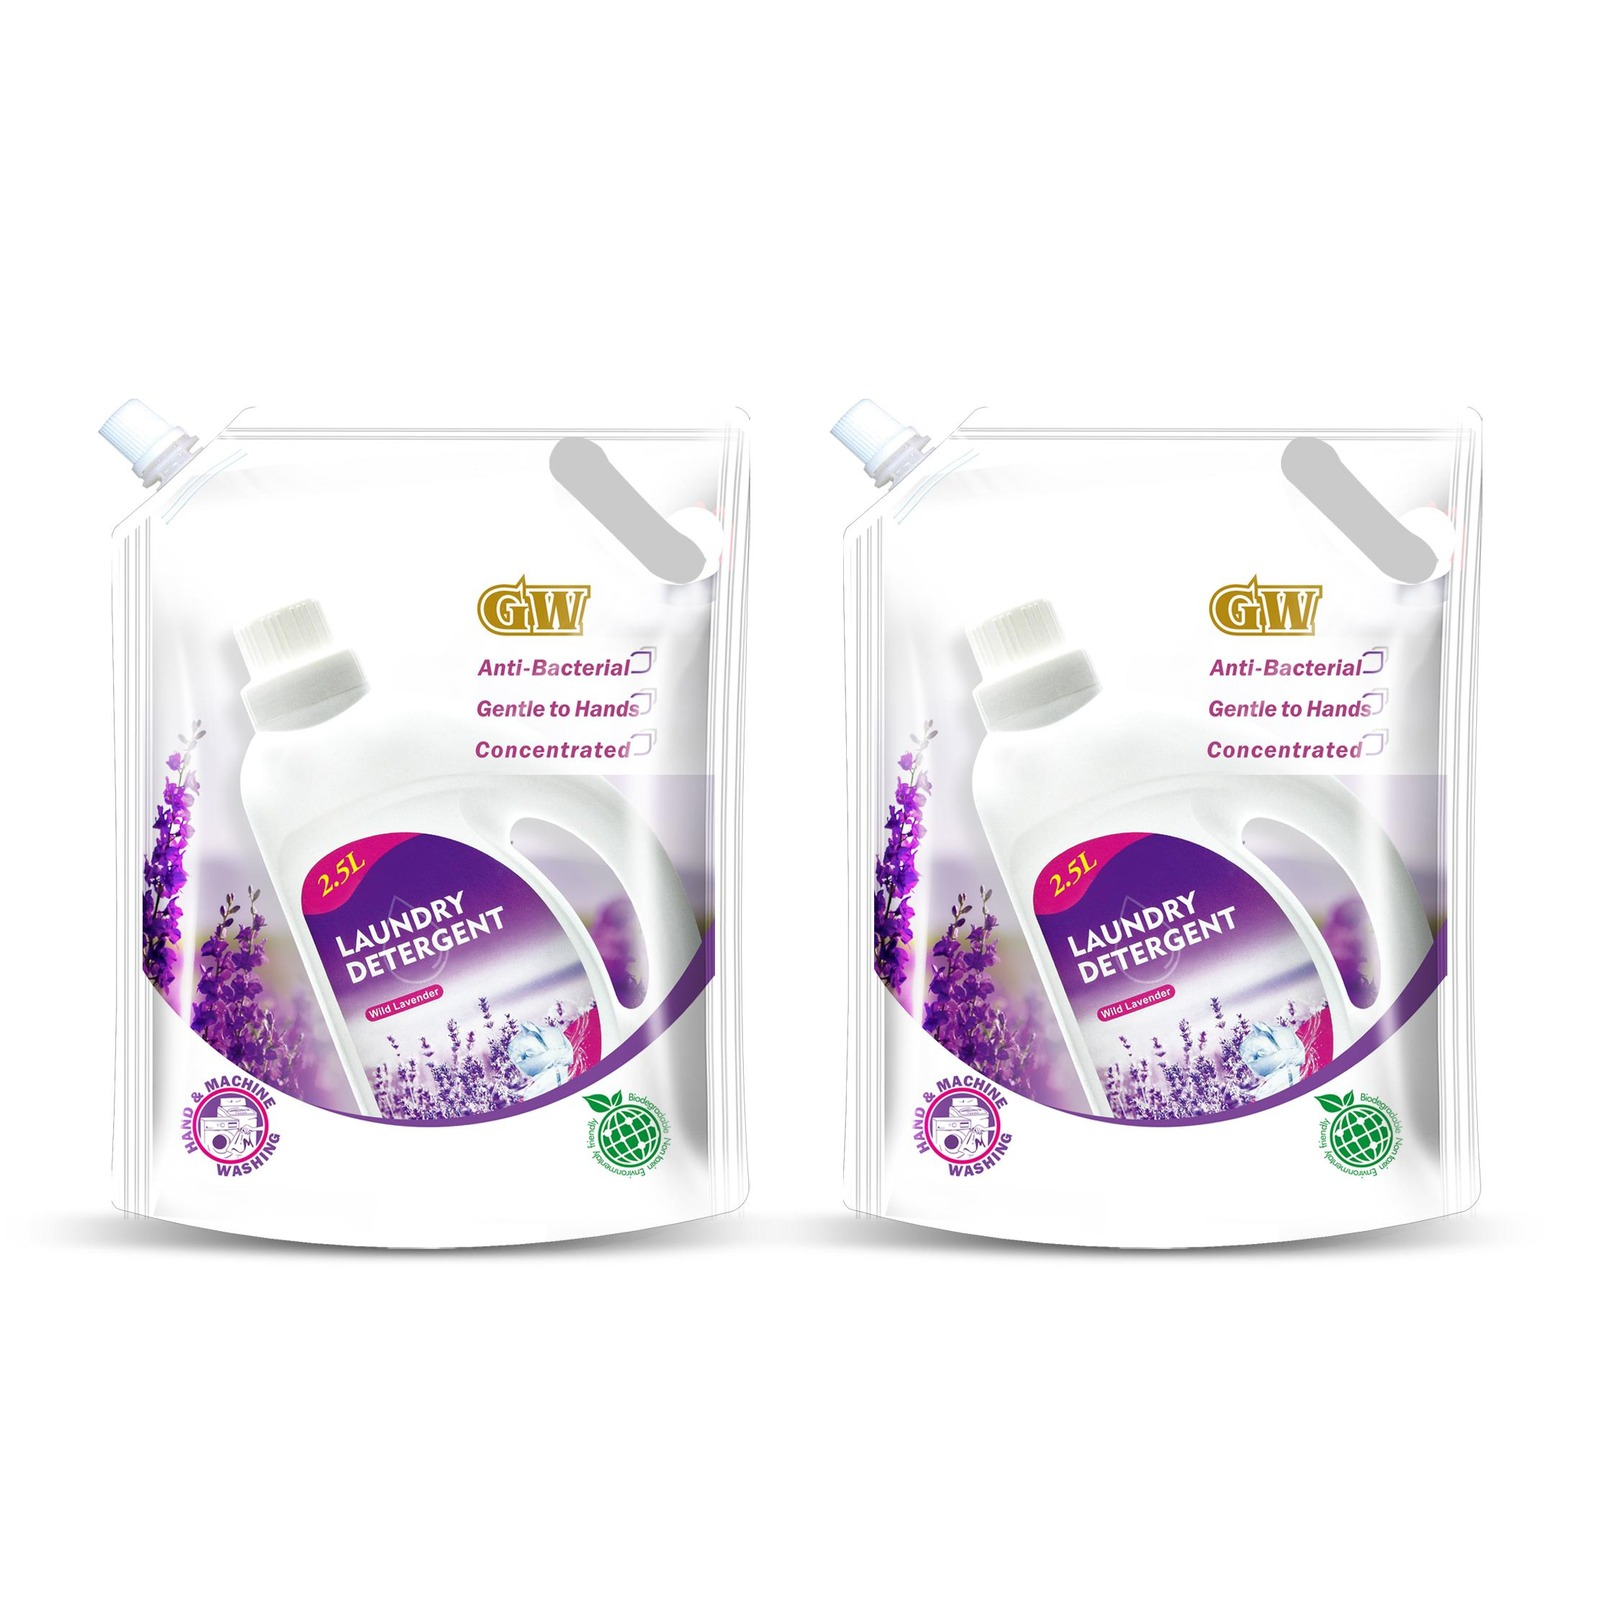 GW Anti-bacterial Laundry Detergent Pack - Wild Lavender